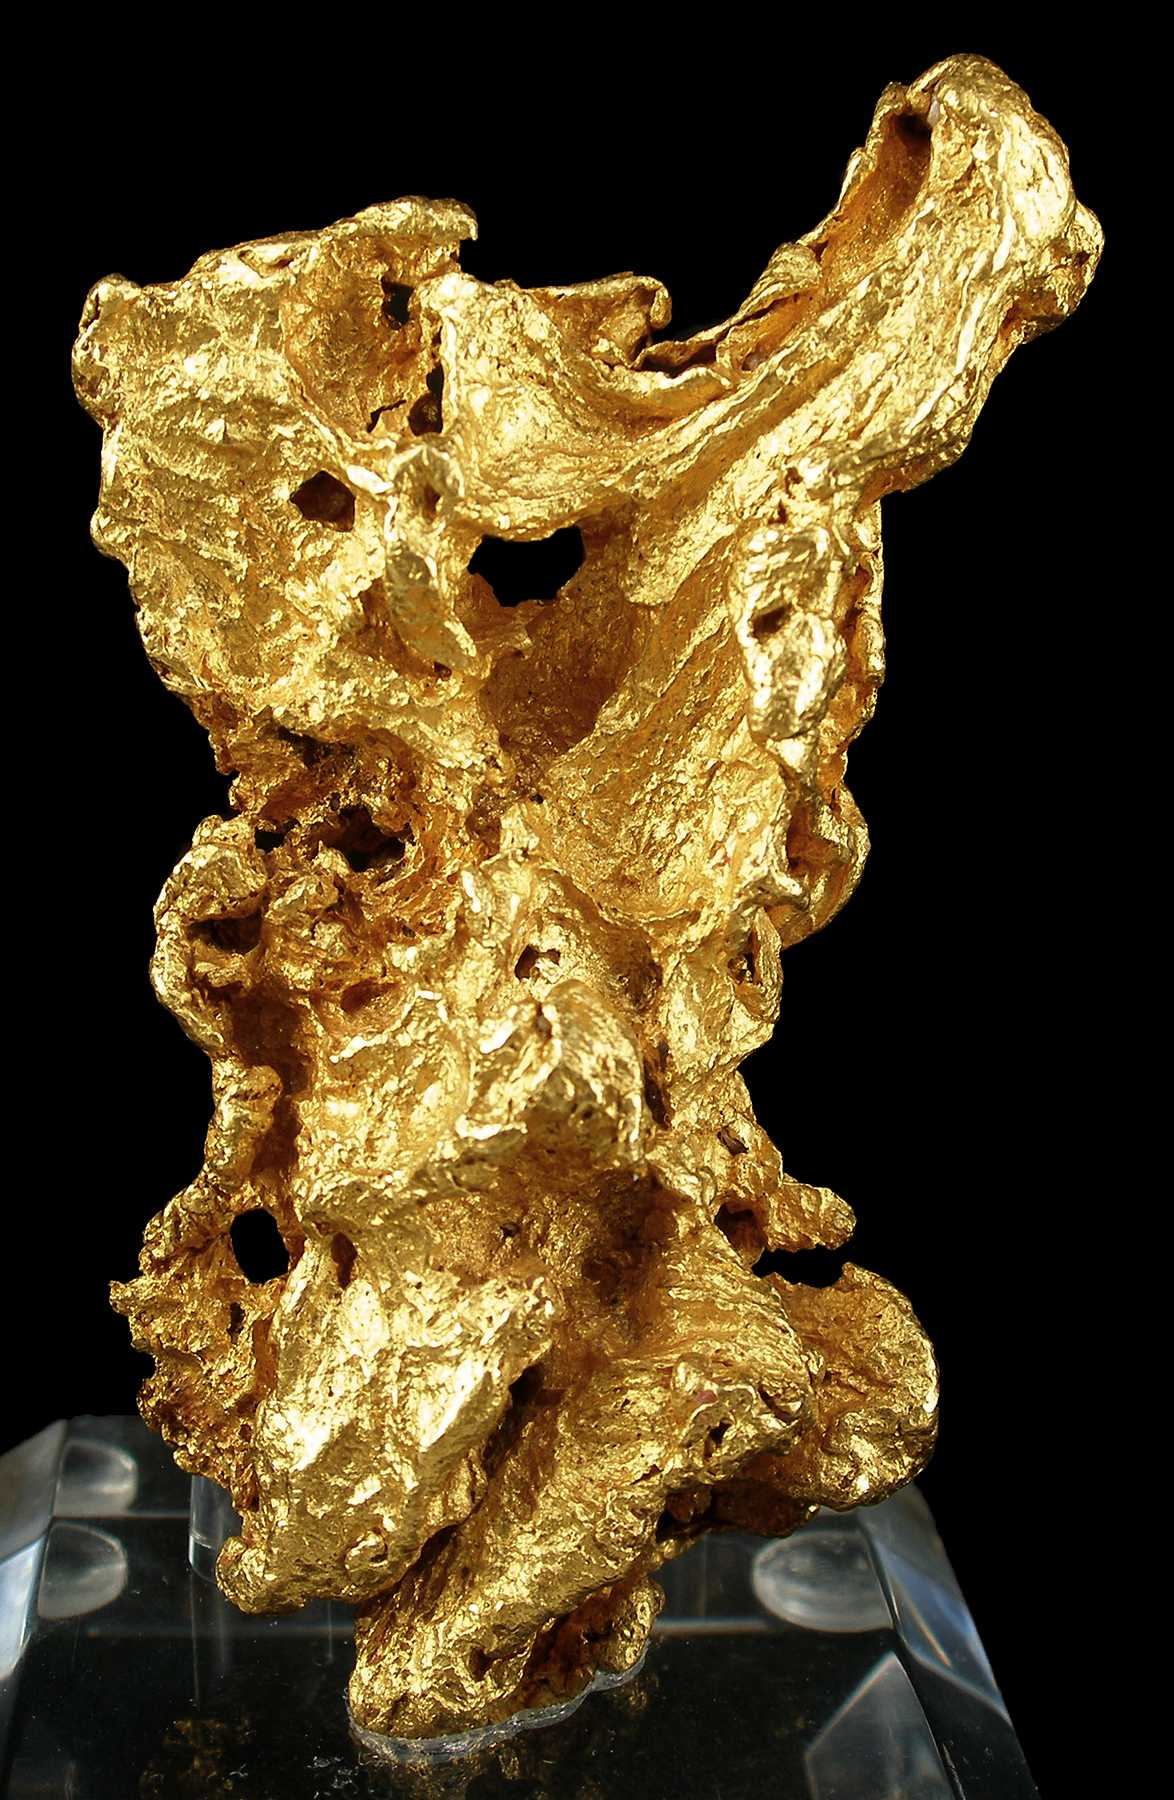 Gold Crystallized Nugget